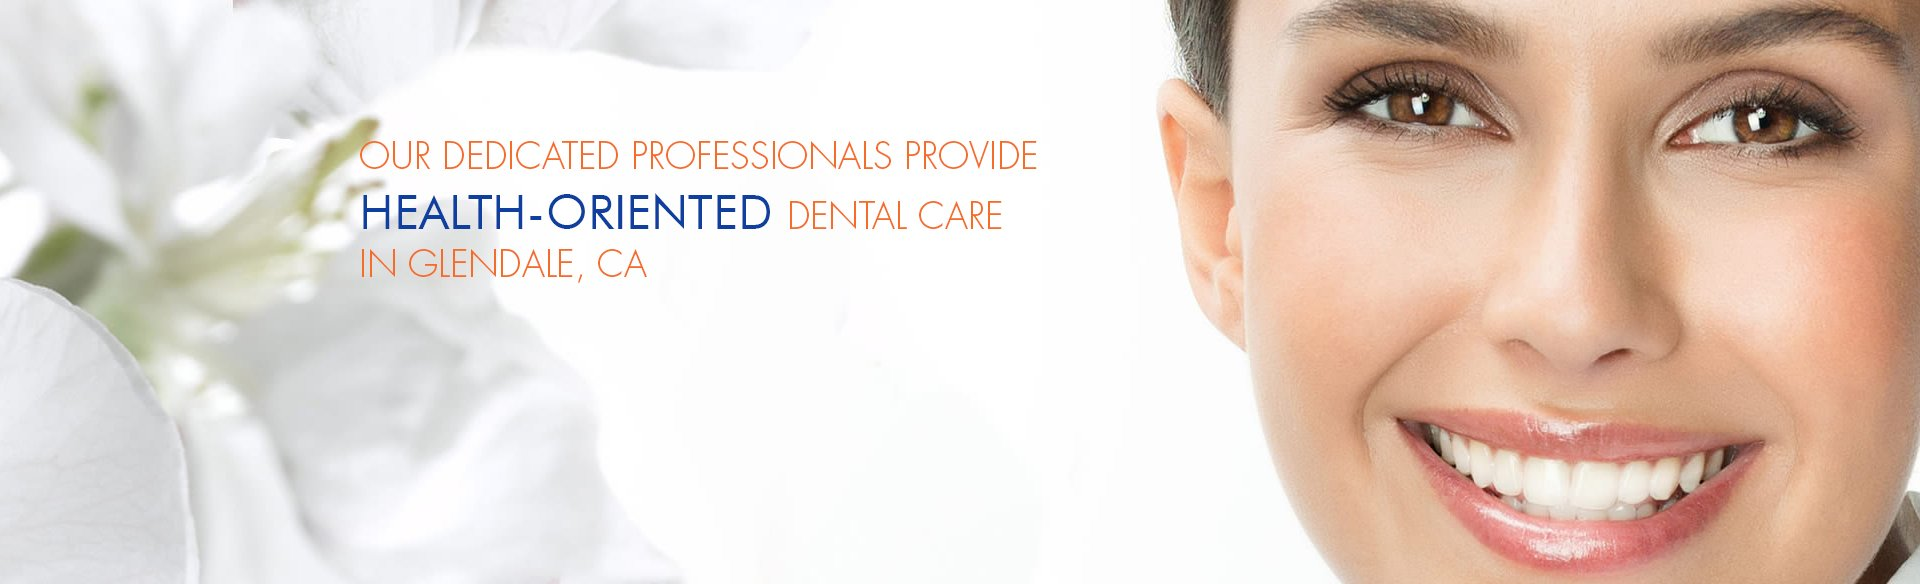 Dr. Carlos Garcia Dentist near Glendale CA, Image Of Our Dedicated Professionals Provide health-Oriented Dental Care